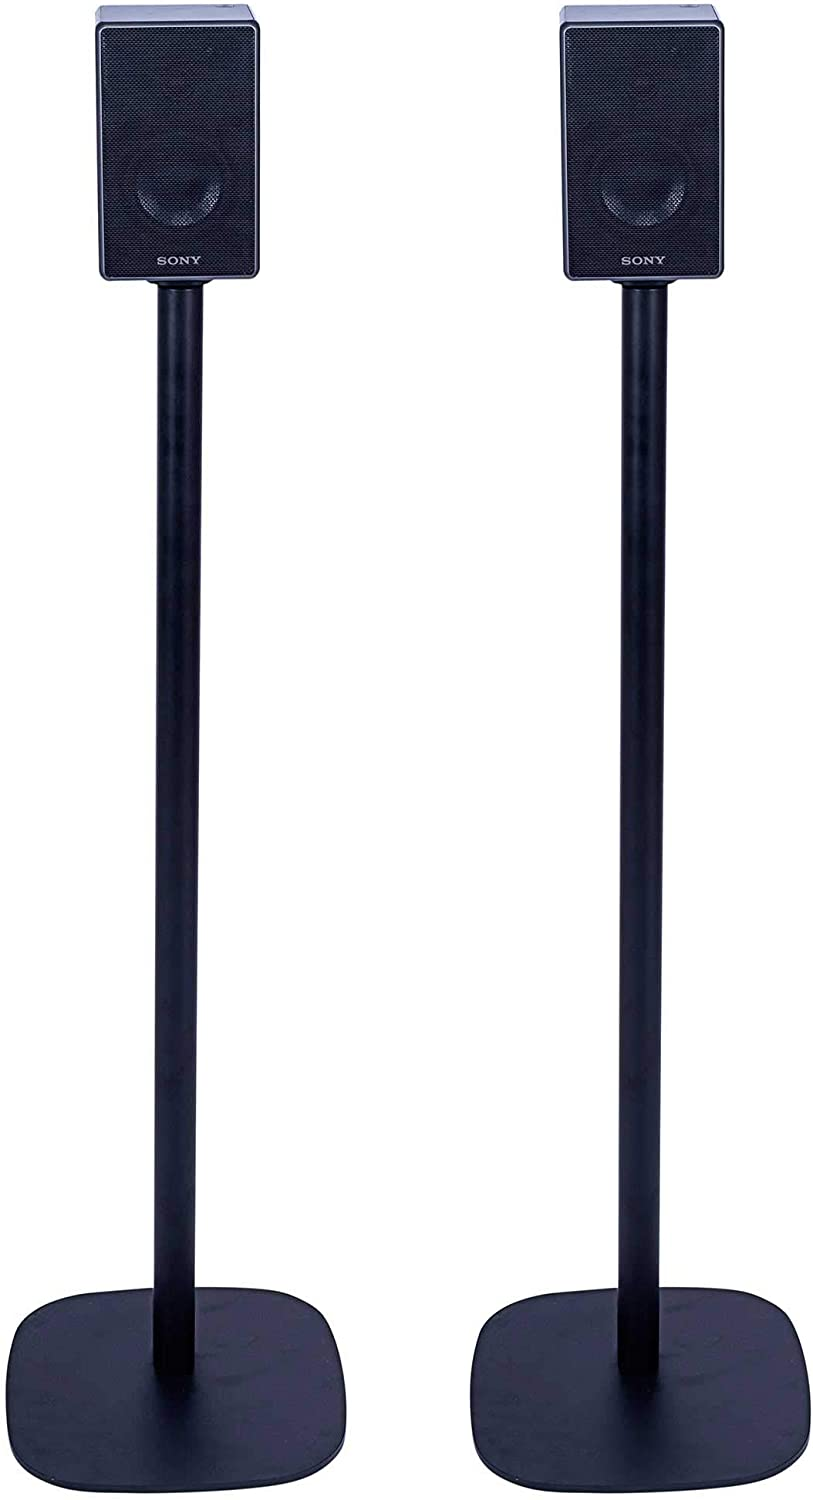 Vebos Floor Stand Sony SRS-ZR5 Black Set en Optimal Experience in Every Room - Allows You to Place Your Sony SRS-ZR5 Exactly Where You Want it - Compatible with Heos 1